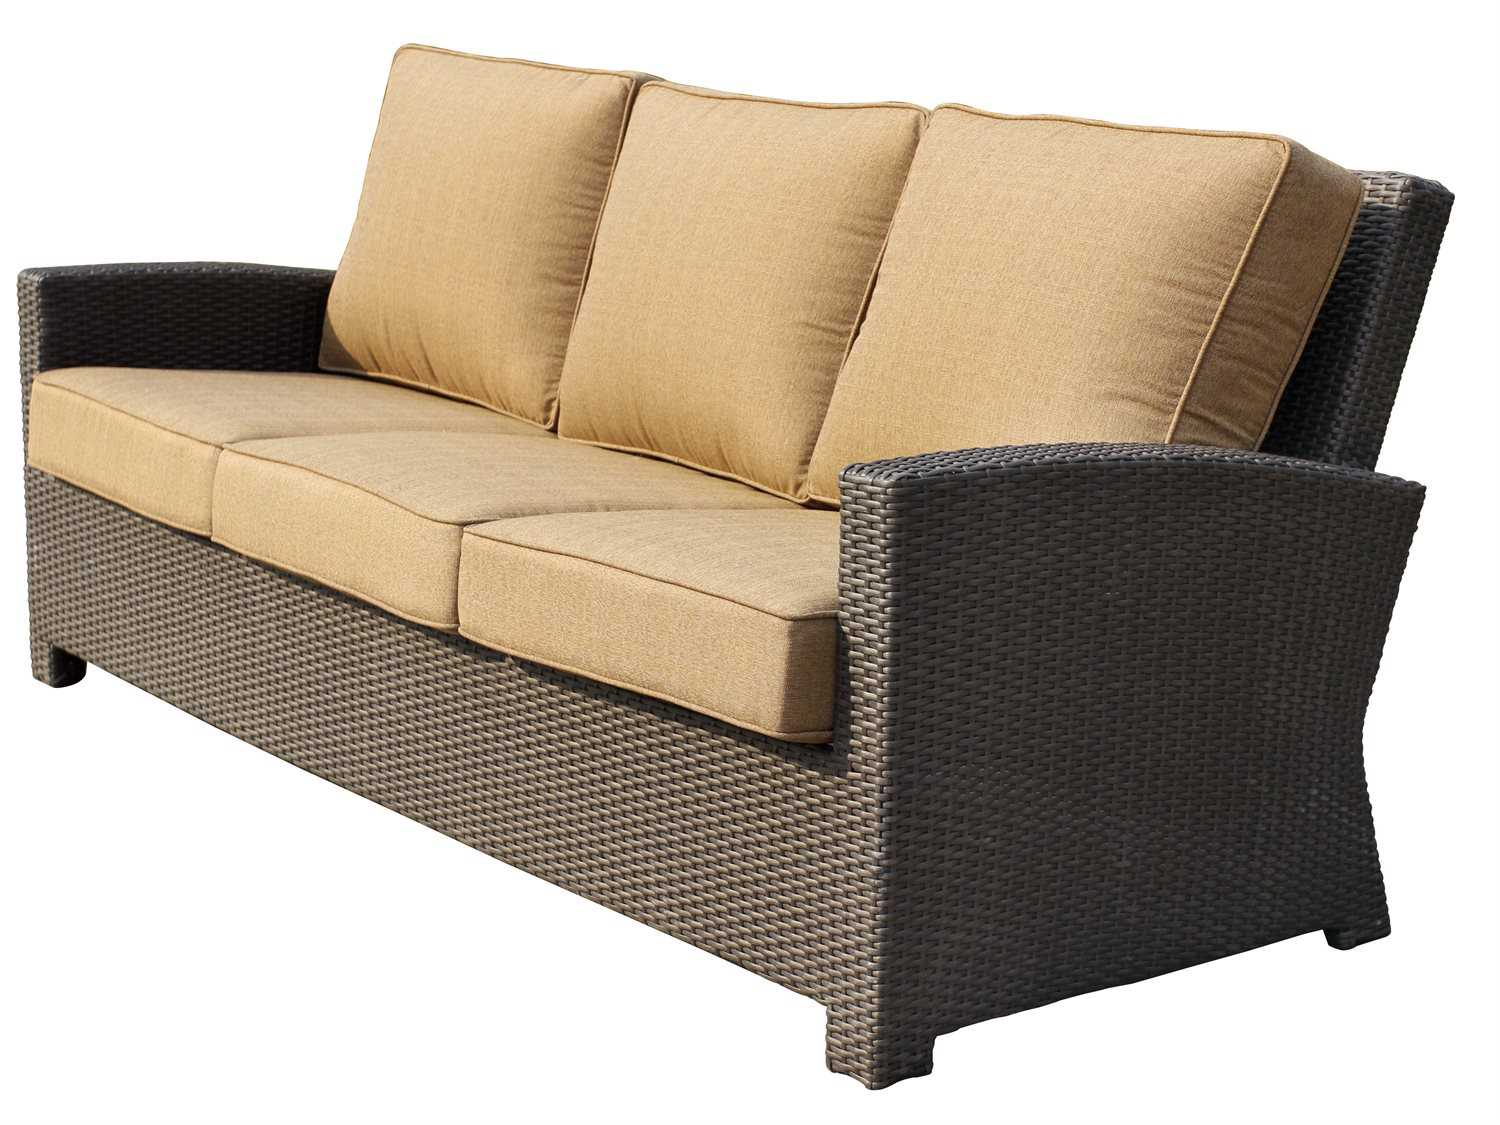 Darlee Outdoor Living Vienna Replacement Sofa Seat And